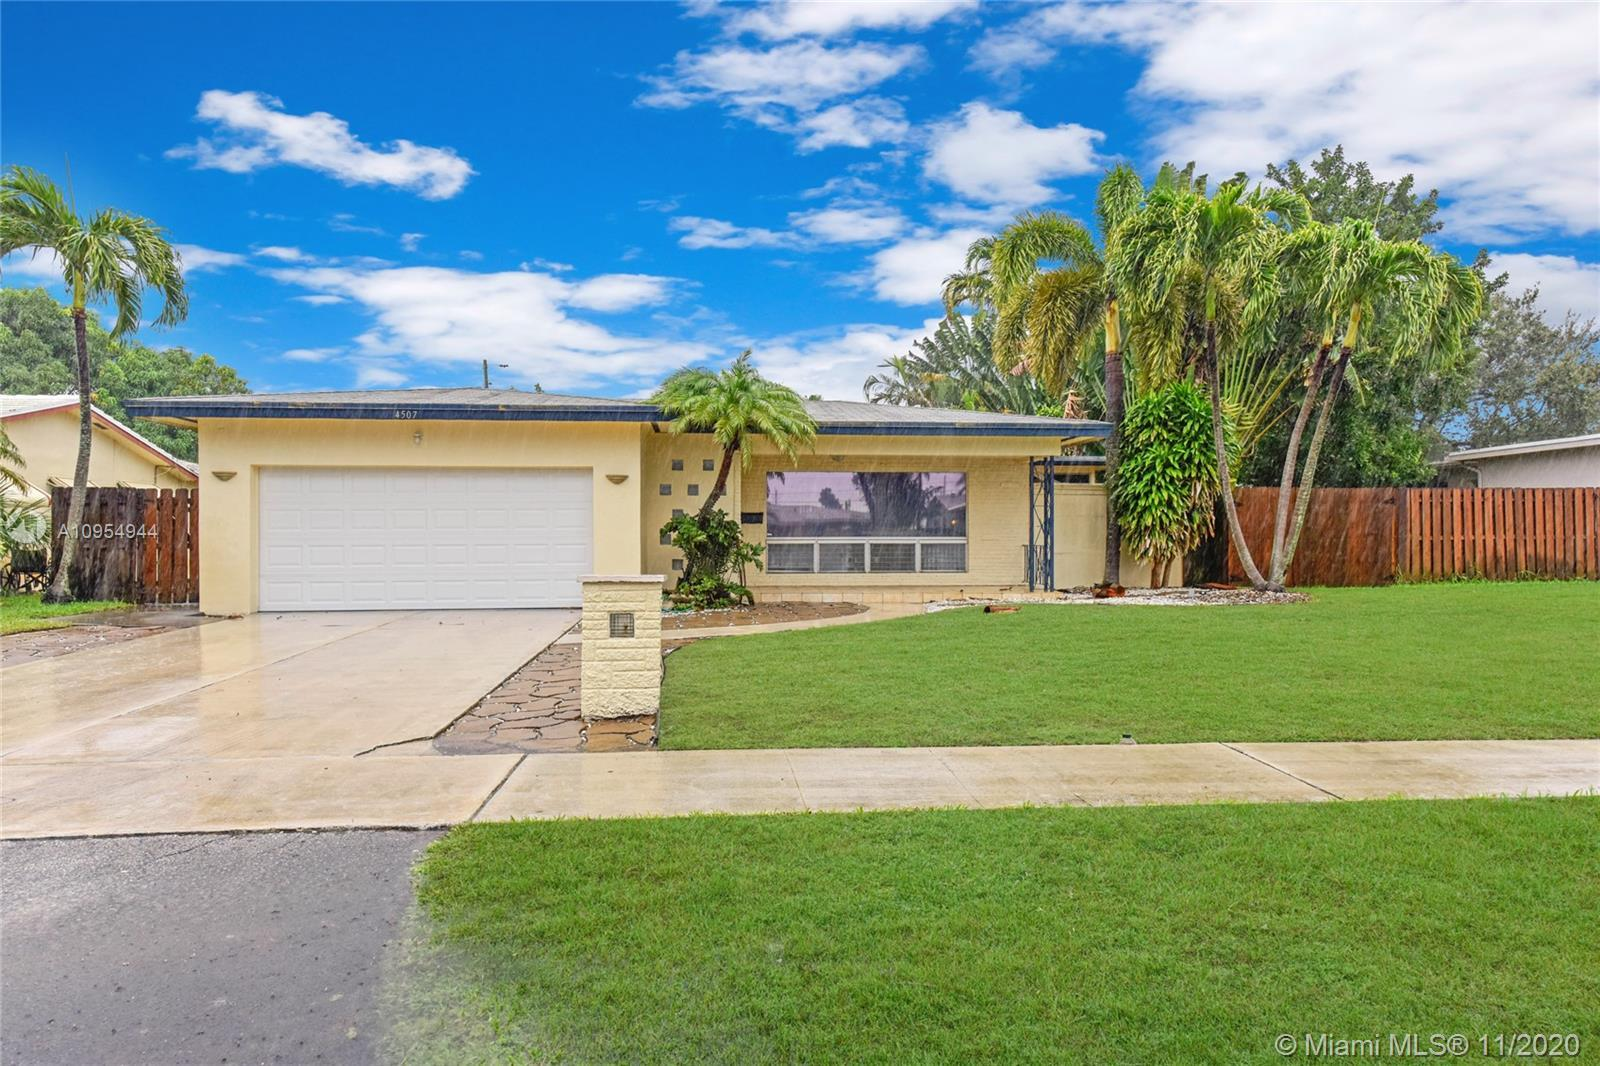 Great 3 bedroom, 2 bathroom home ready for you to call home! This property offers a wonderful layout